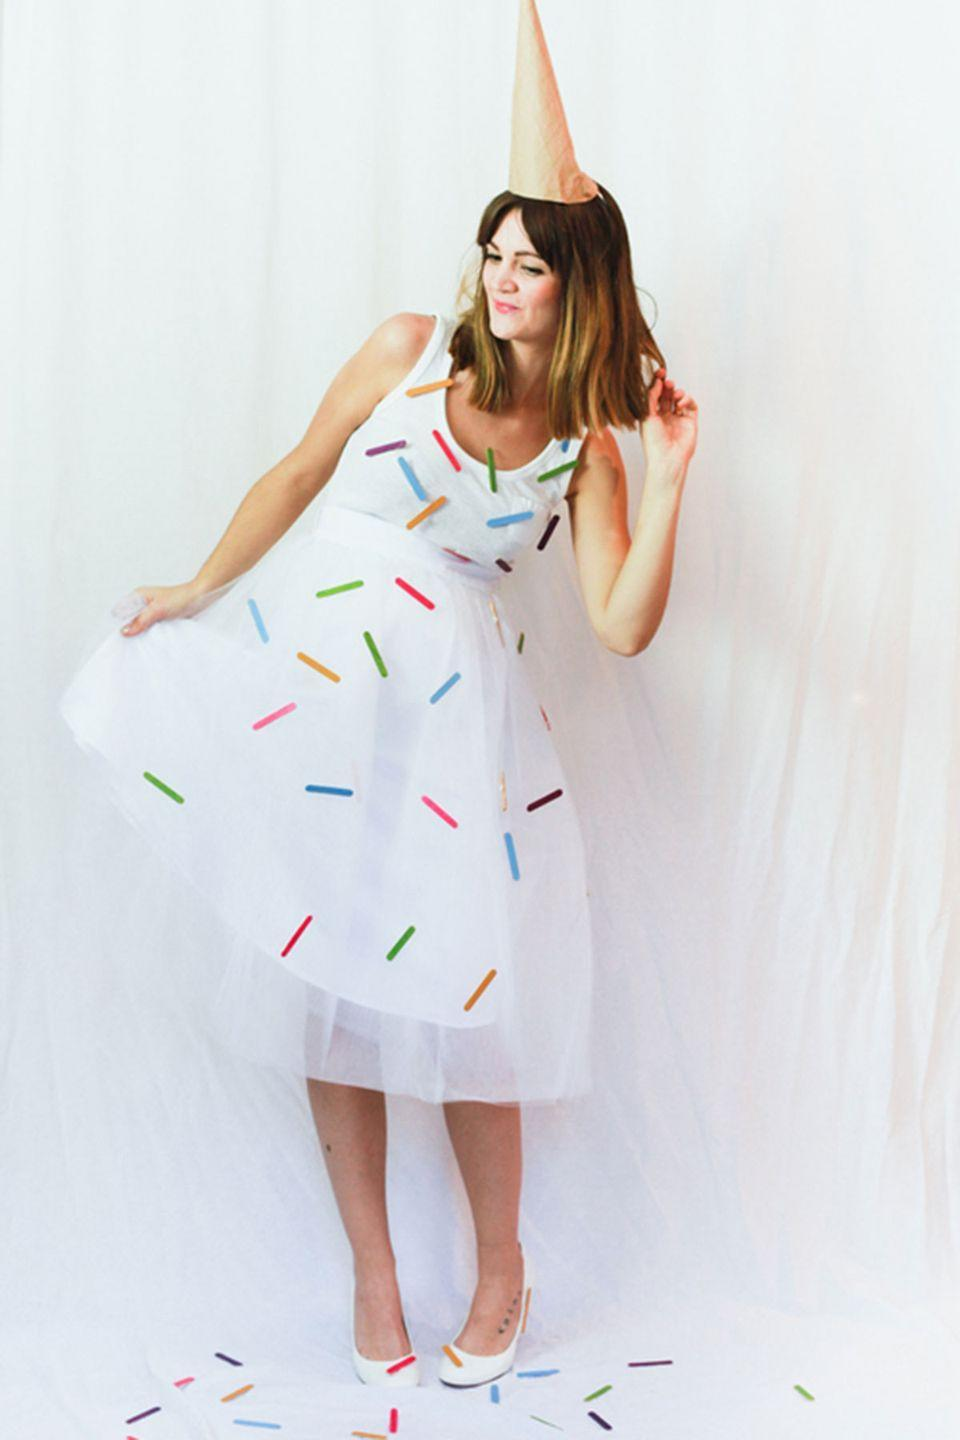 """<p>I scream, you scream, we all scream for this sweet costume idea.</p><p><strong>Get the tutorial at <a href=""""http://treasuresandtravelsblog.com/blog/2014/10/24/halloween-costumes-ice-cream-cotton-candy"""" rel=""""nofollow noopener"""" target=""""_blank"""" data-ylk=""""slk:Treasures and Travels"""" class=""""link rapid-noclick-resp"""">Treasures and Travels</a>. </strong></p>"""